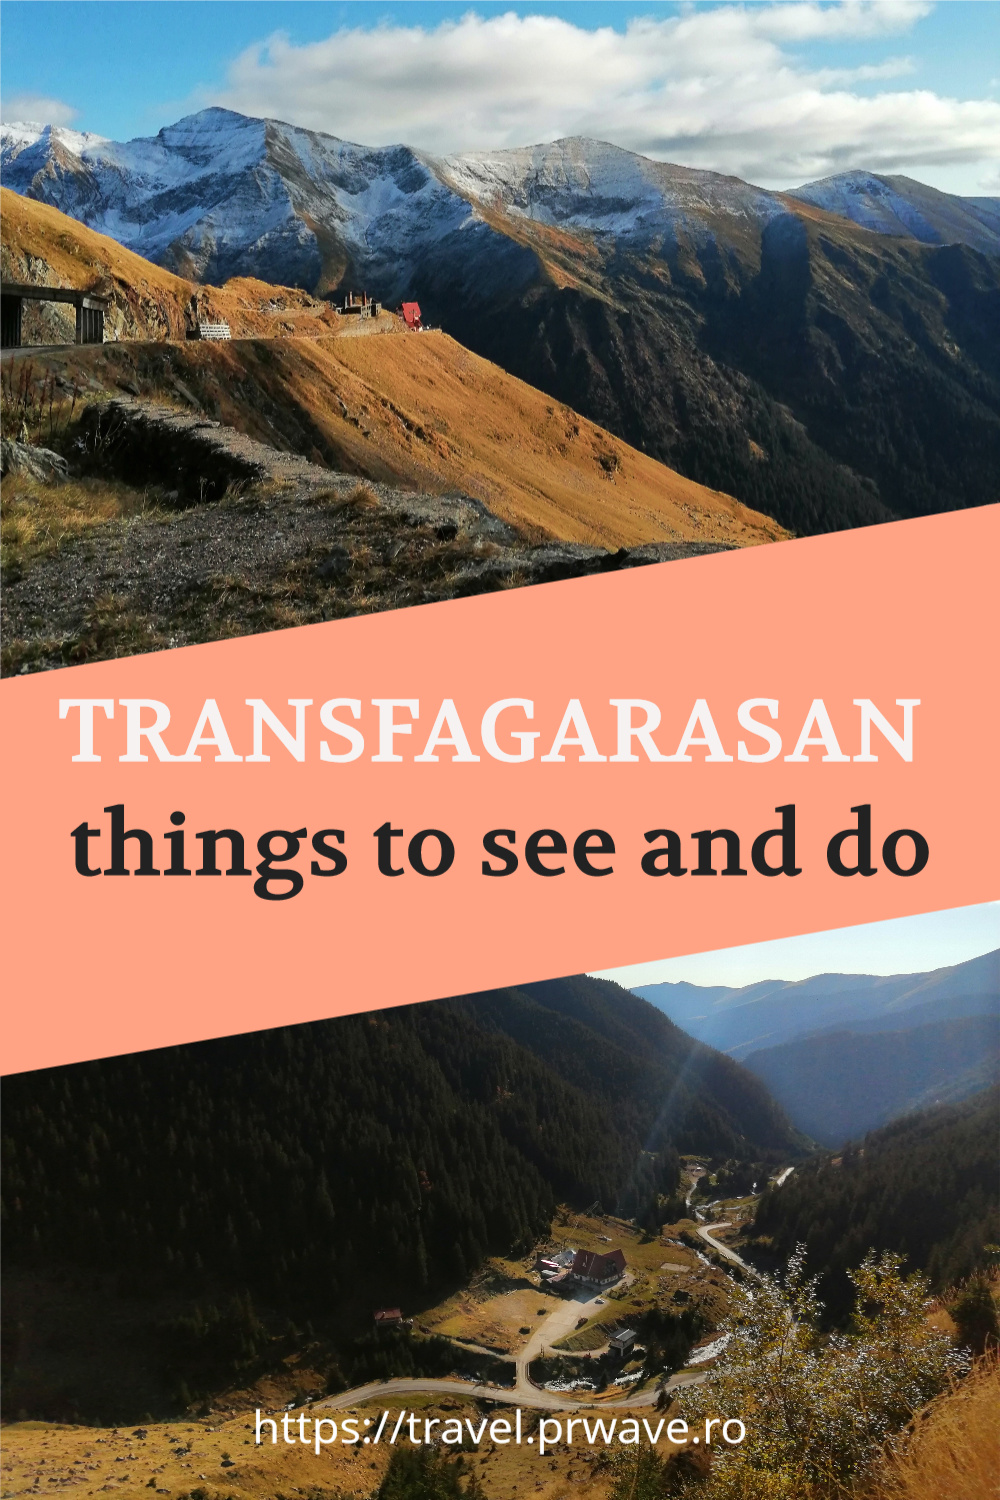 Transfgarasan things to see and do! Read this comprehensive local's guide to the Transfagarasan and discover the best road in the world, as it's known. Find out the Transfagarasan attractions and the best Transfagarasan viewpoints. Discover the Balea Lake and Vidraru Dam too! Read the article now! #transfagarasan #transfagarasanroad #transfagarasanhighway #transfagarasanromania #romania #romaniatravel #europe #roadtrip #romaniaroadtrip #travelmomentsintime #visitromania